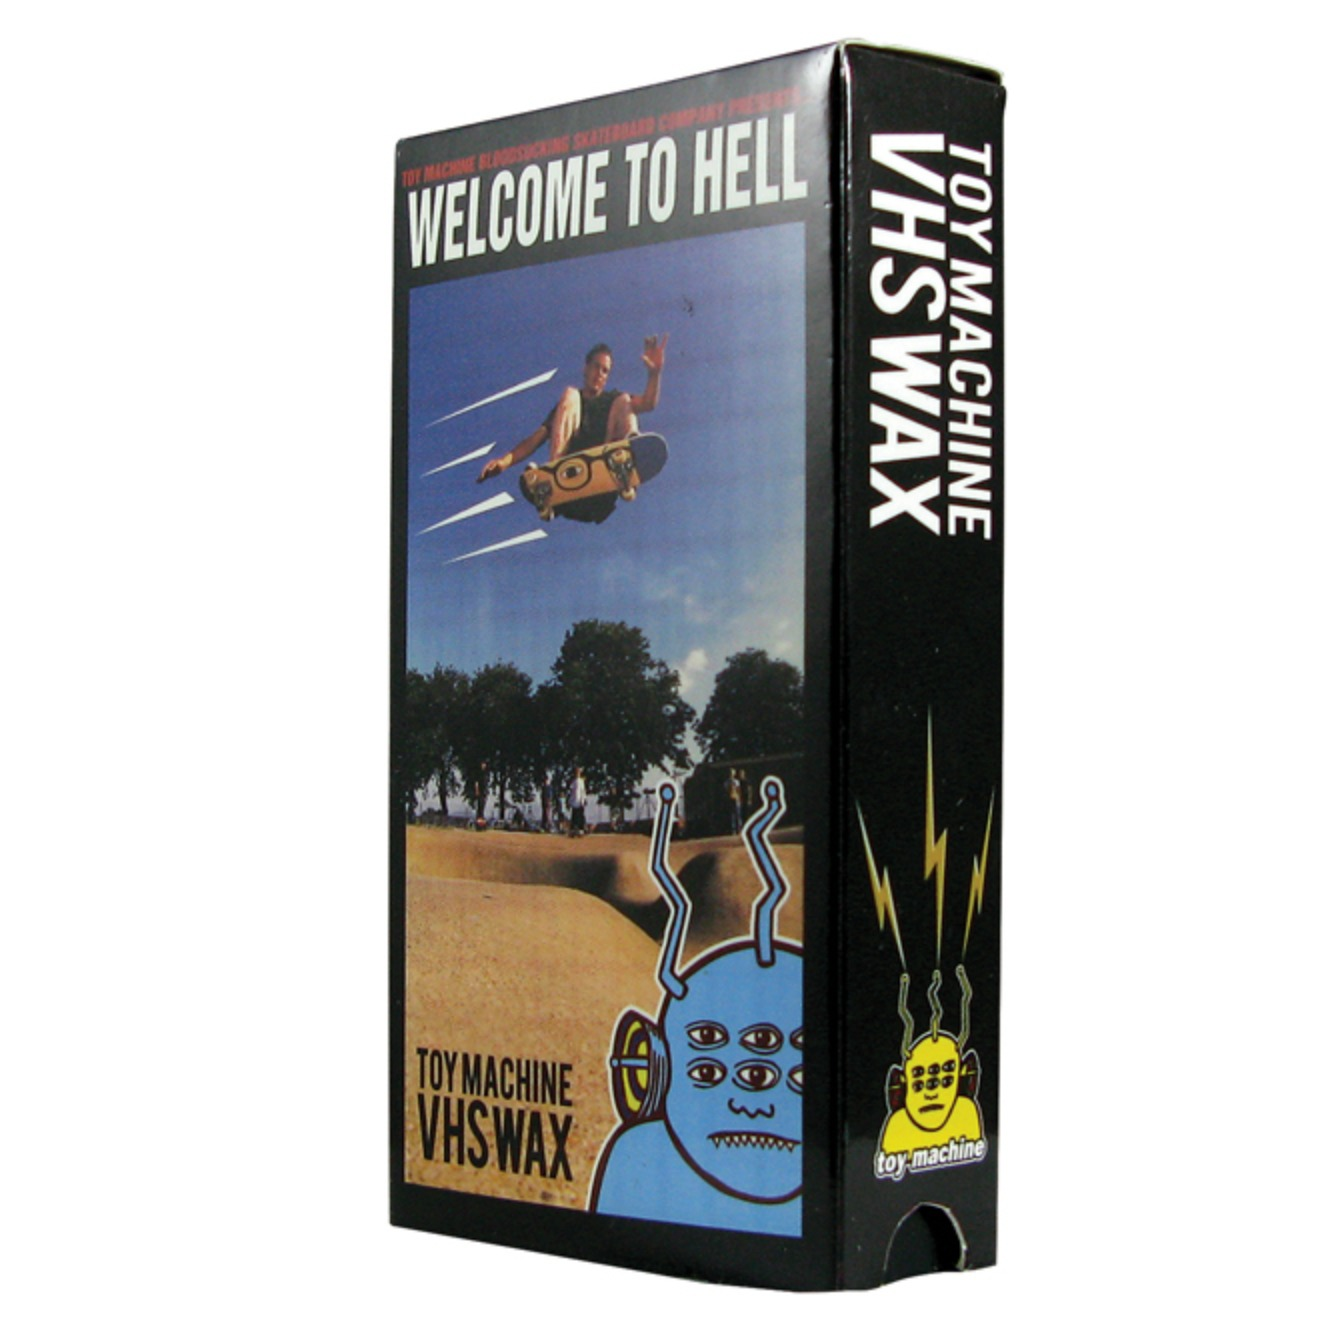 Toy Machine - Welcome to Hell - VHS Wax